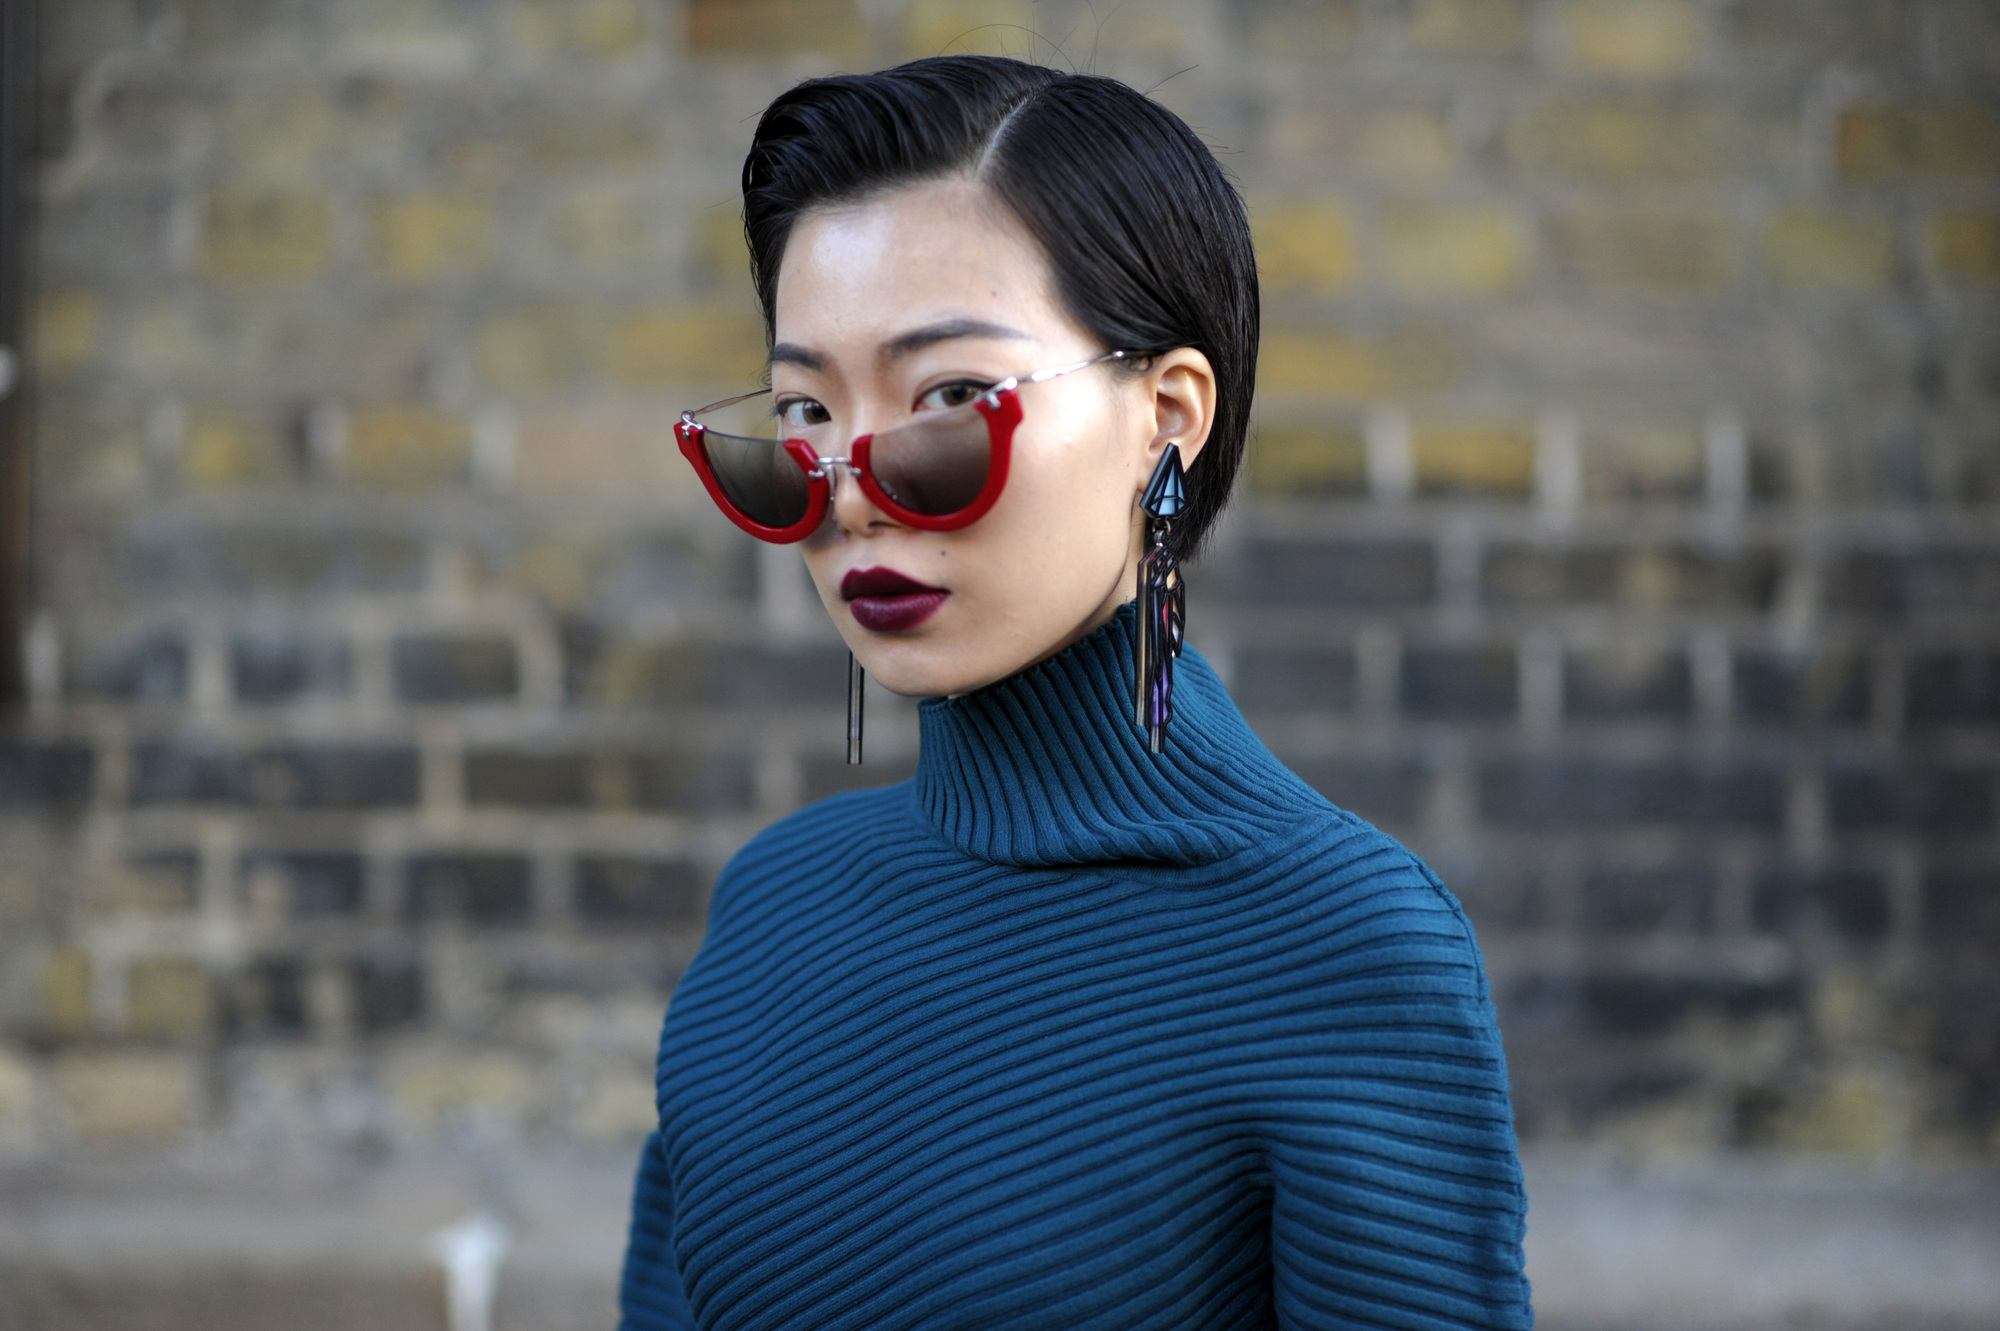 asian short hairstyles: close up shot of woman with short side-part pixie cut wearing blue jumper